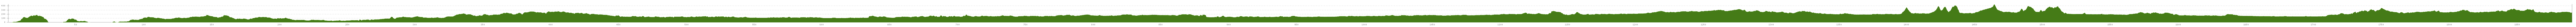 Elevation profile Cycle Route GreenVelo - Wschodni Szlak